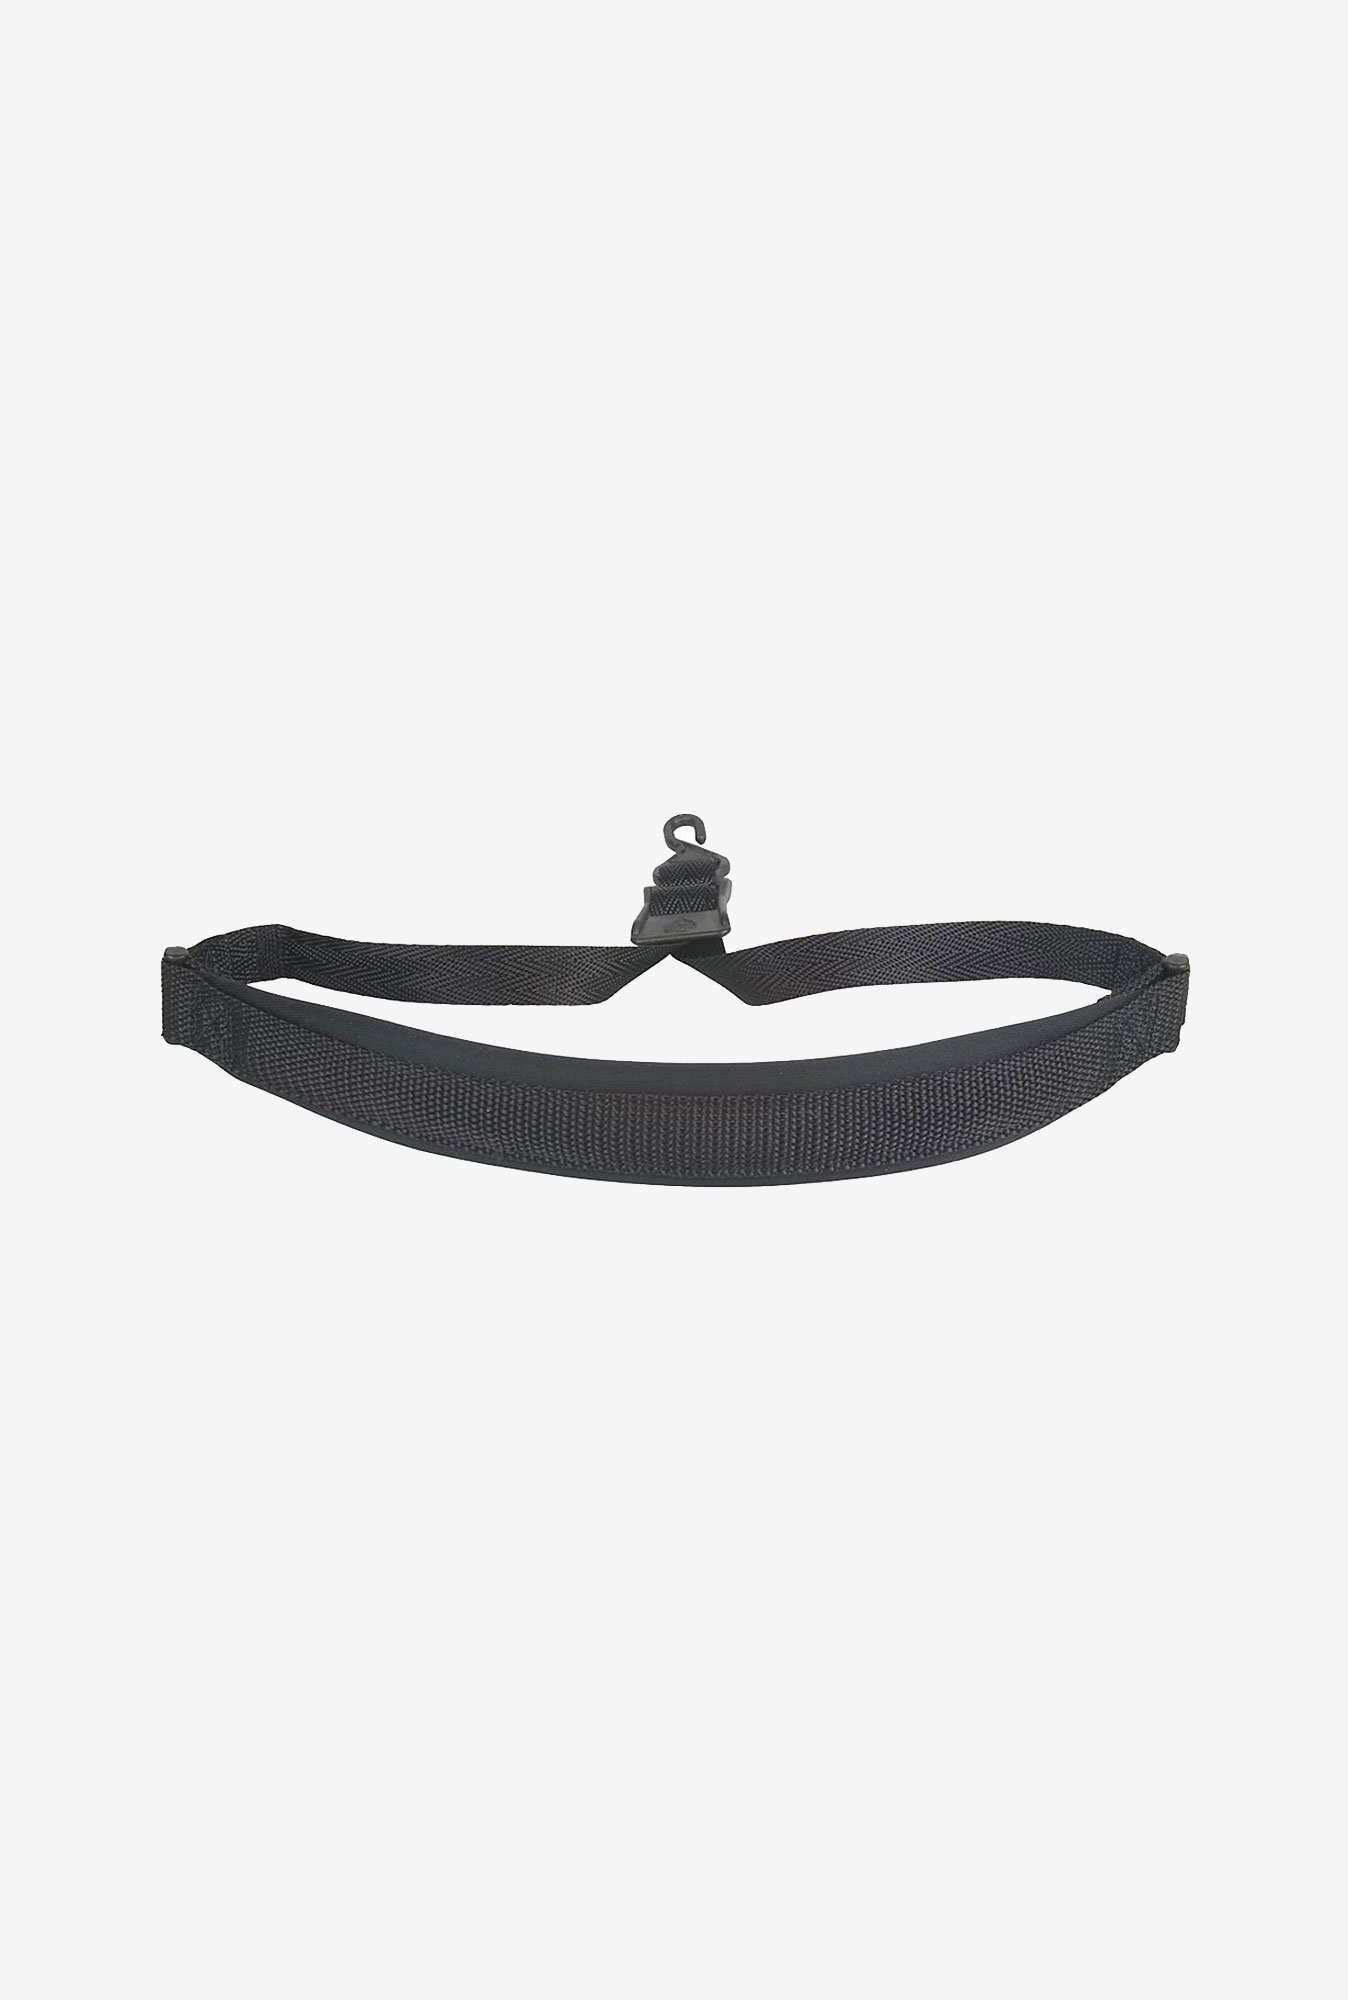 Neotech 8401032 Open Hook Wick-It Sax Strap X-Long (Black)